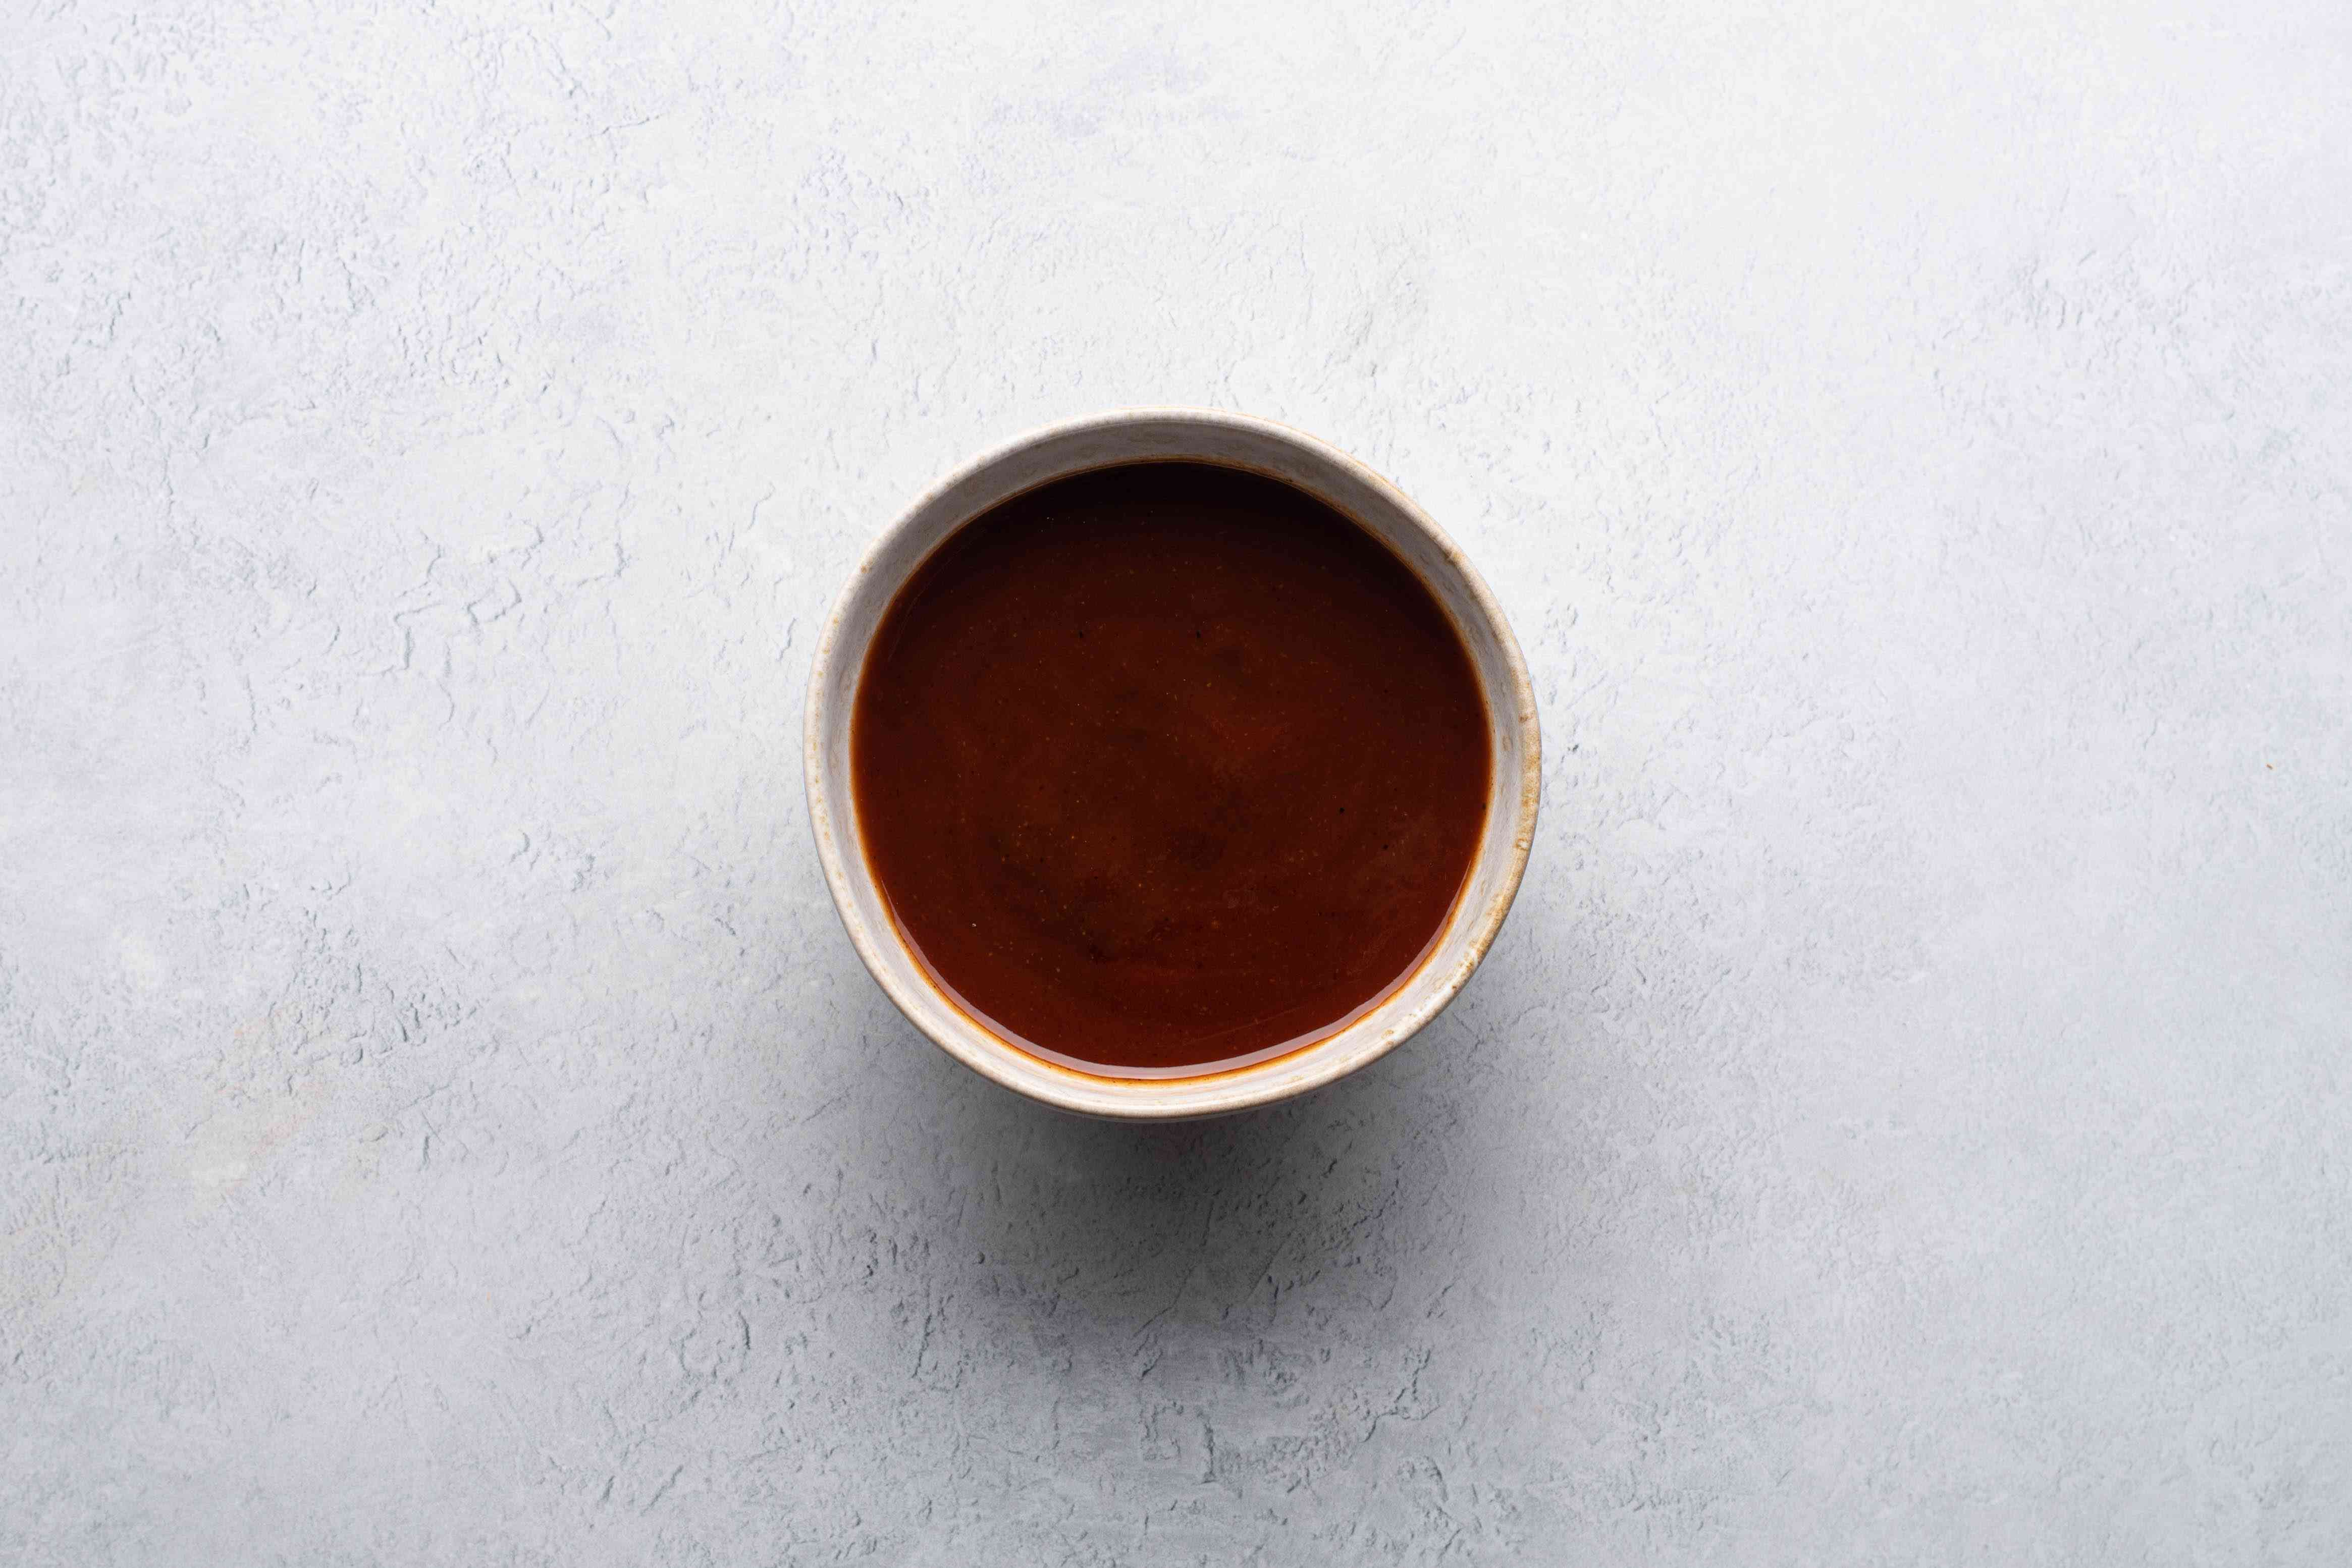 barbecue sauce in a bowl